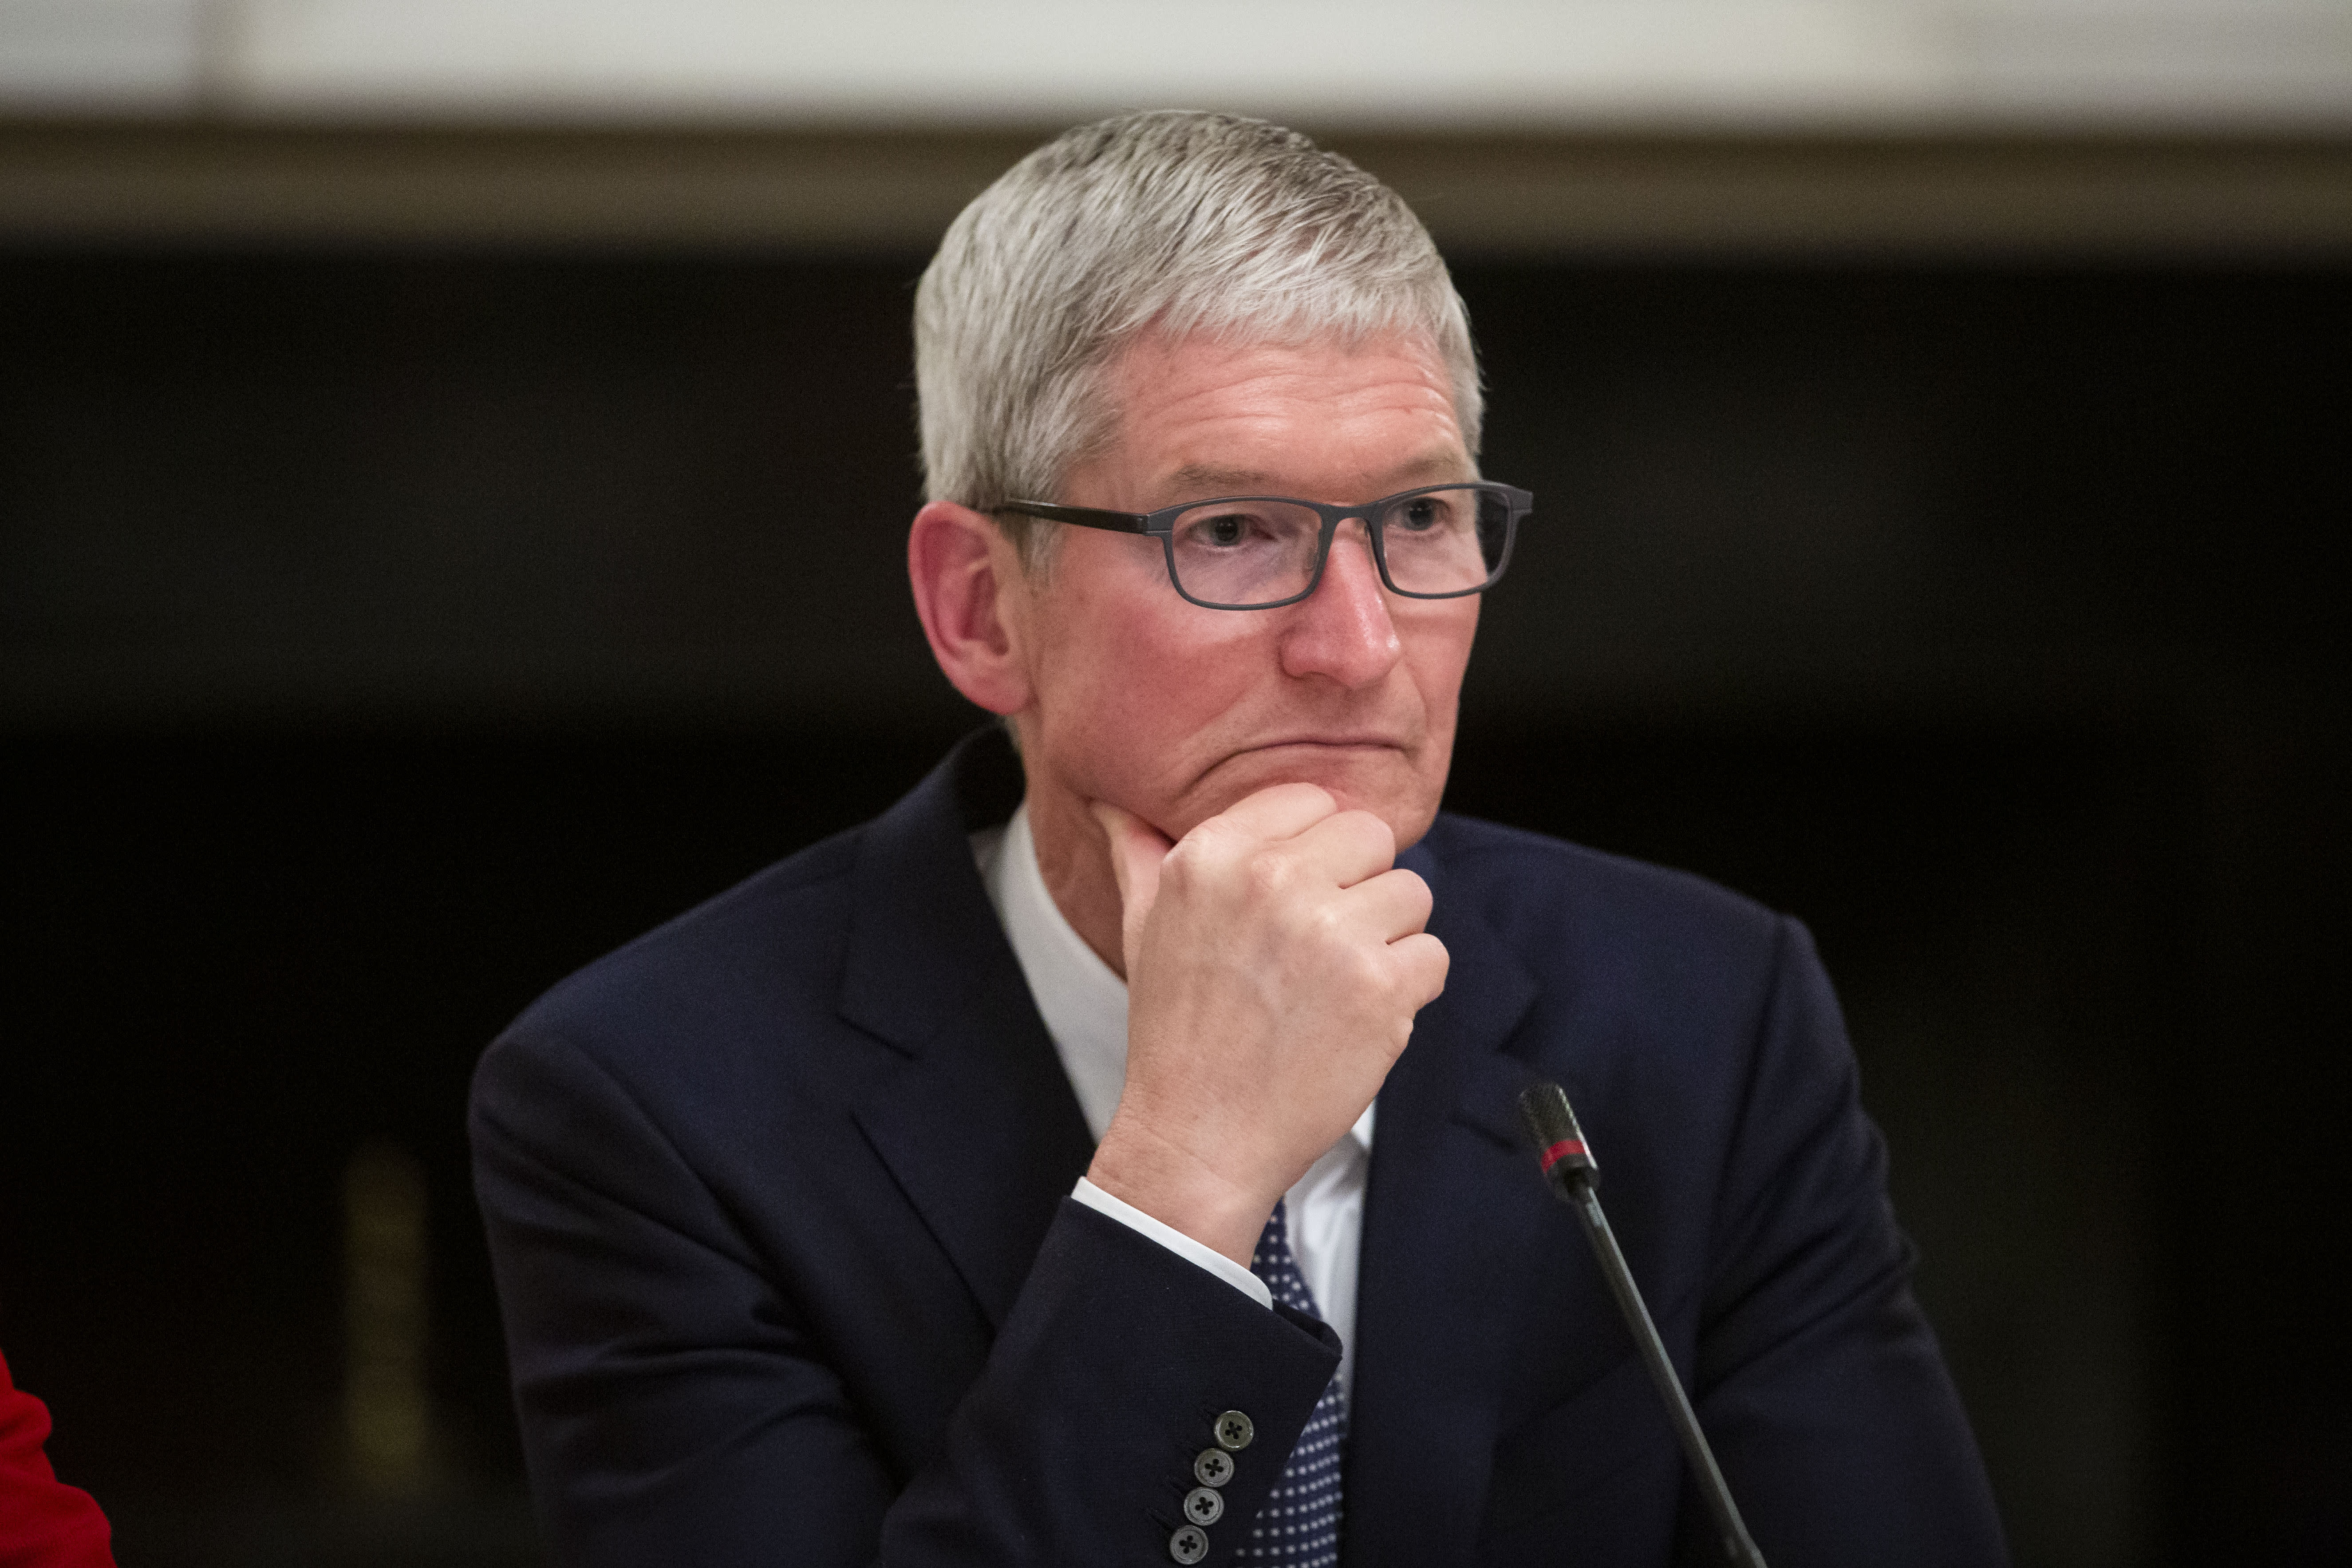 Quantifying just how much the trade war could hurt Apple